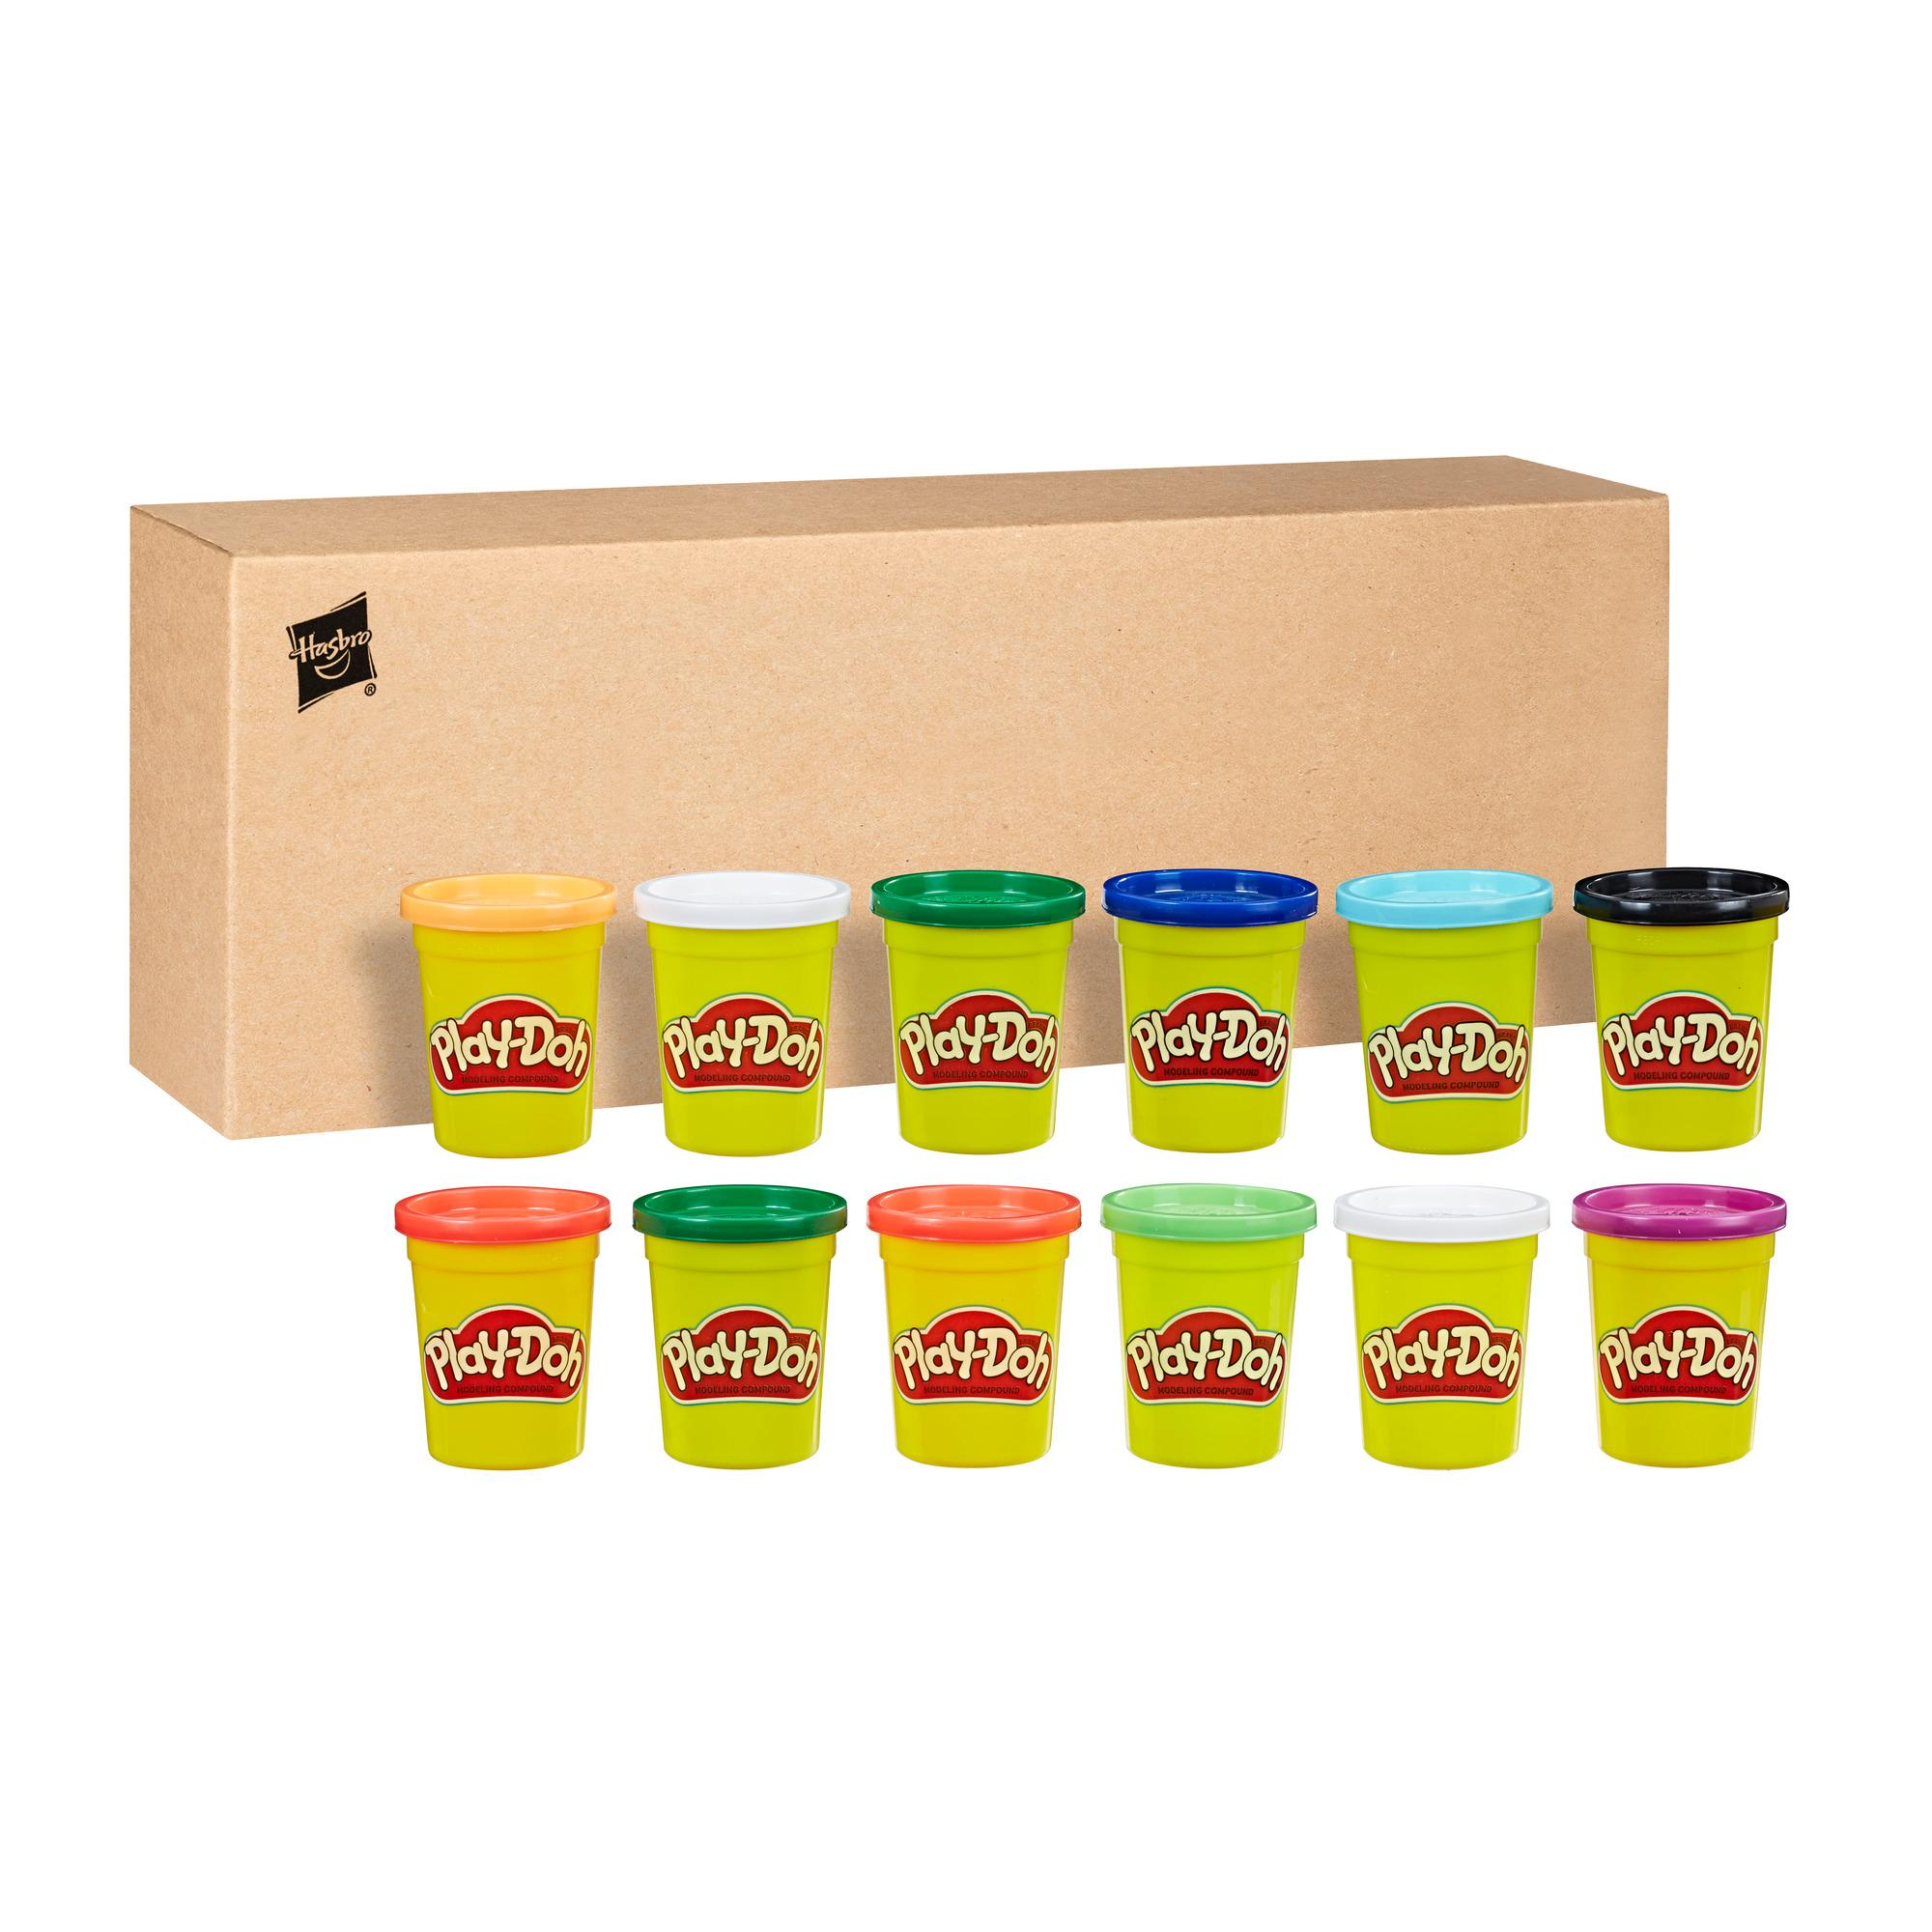 Play-Doh Bulk Winter Colors 12-Pack of Non-Toxic Modeling Compound, 4-Ounce Cans